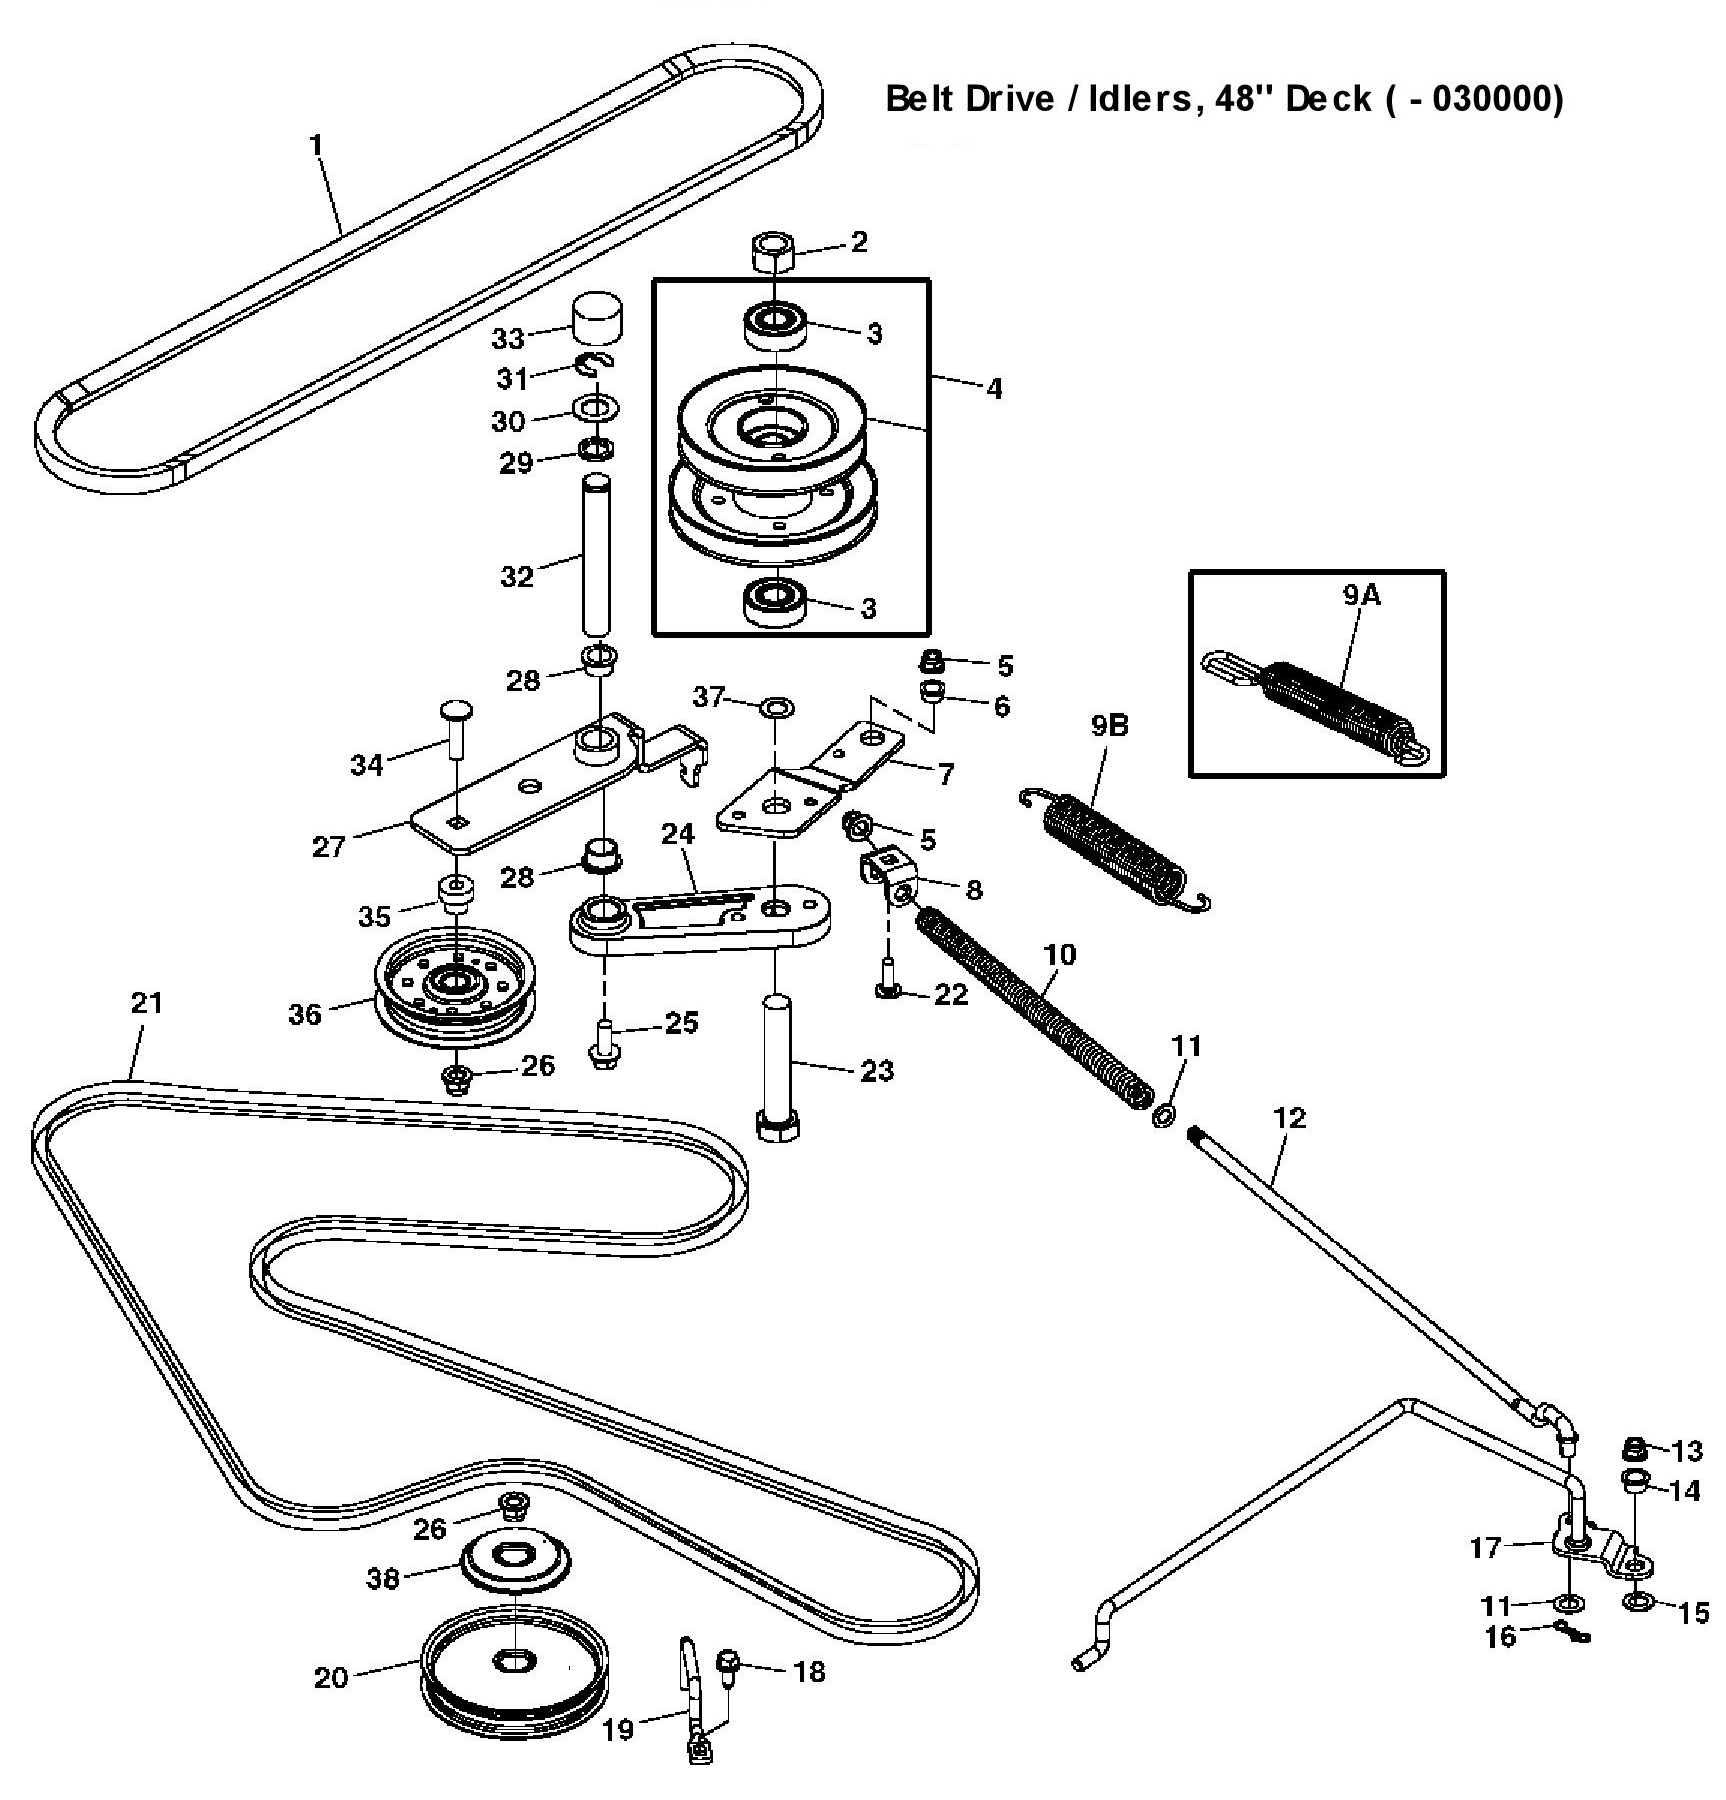 John Deere D100 Mower Belt Diagram Schematics Data Wiring Diagrams D110 757 Ztrak 54 Deck Manual 50 Images Parts